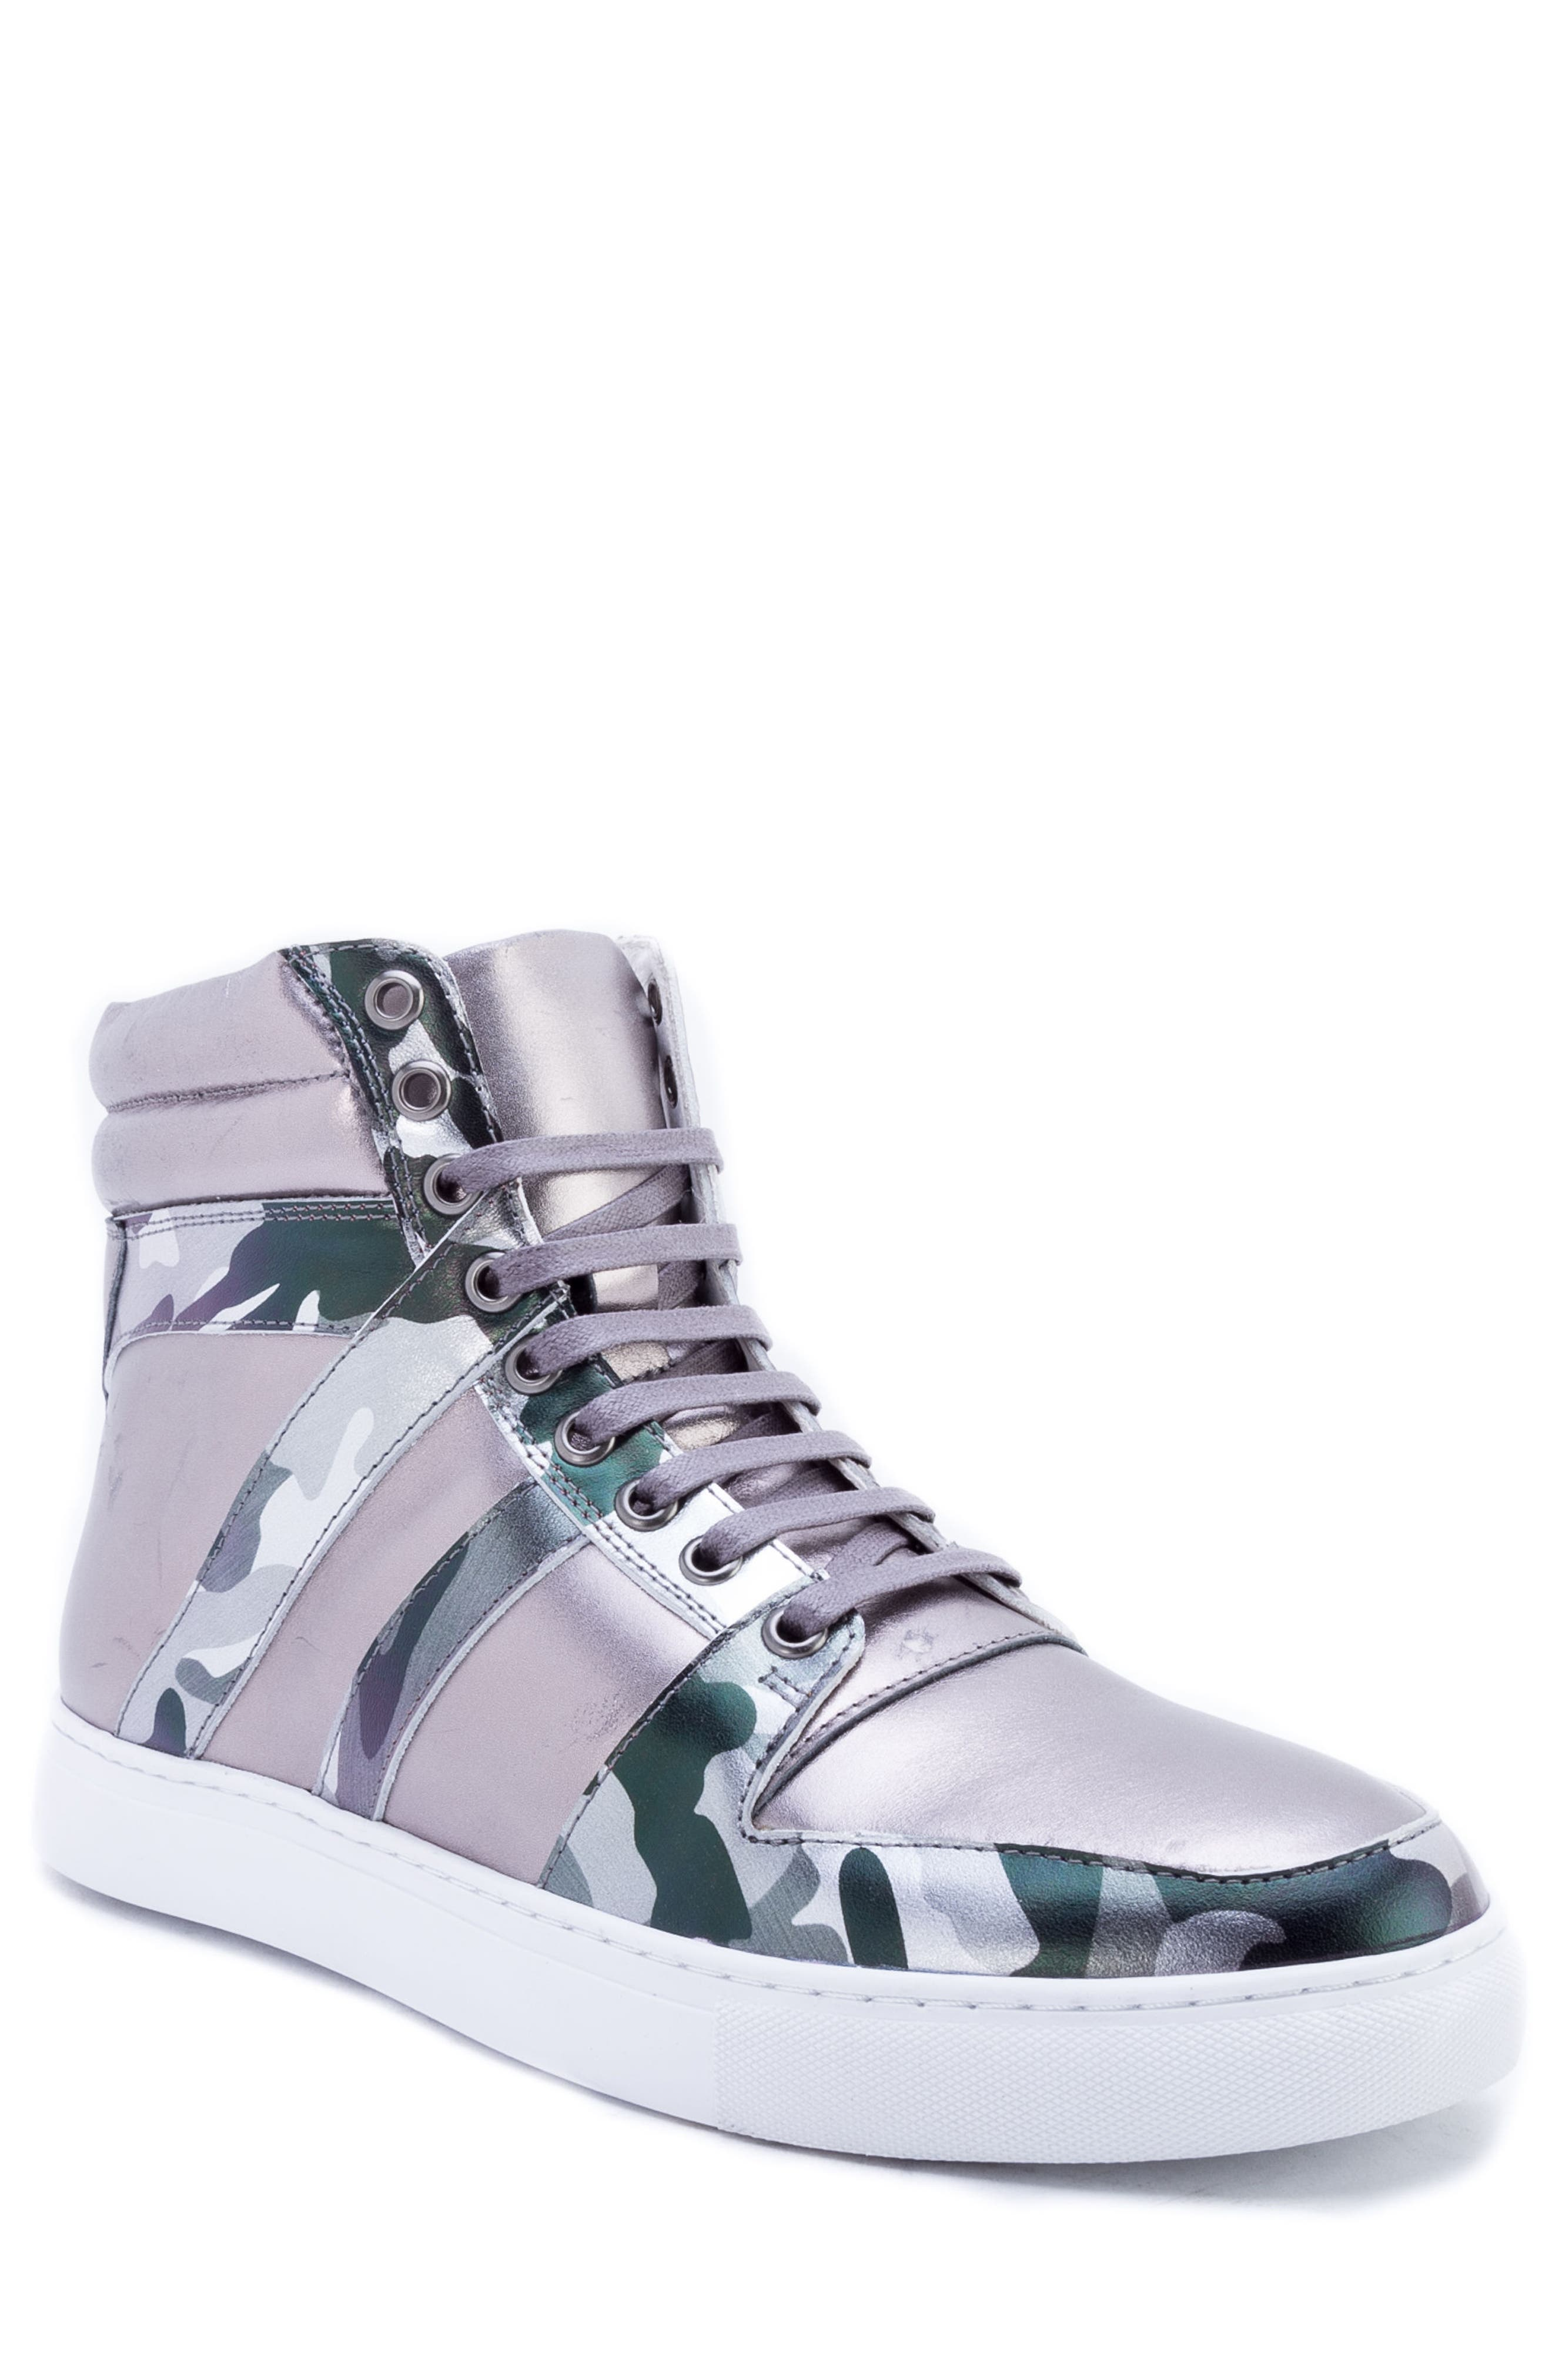 Badgley Mischka Sutherland Sneaker,                             Main thumbnail 1, color,                             GREY LEATHER